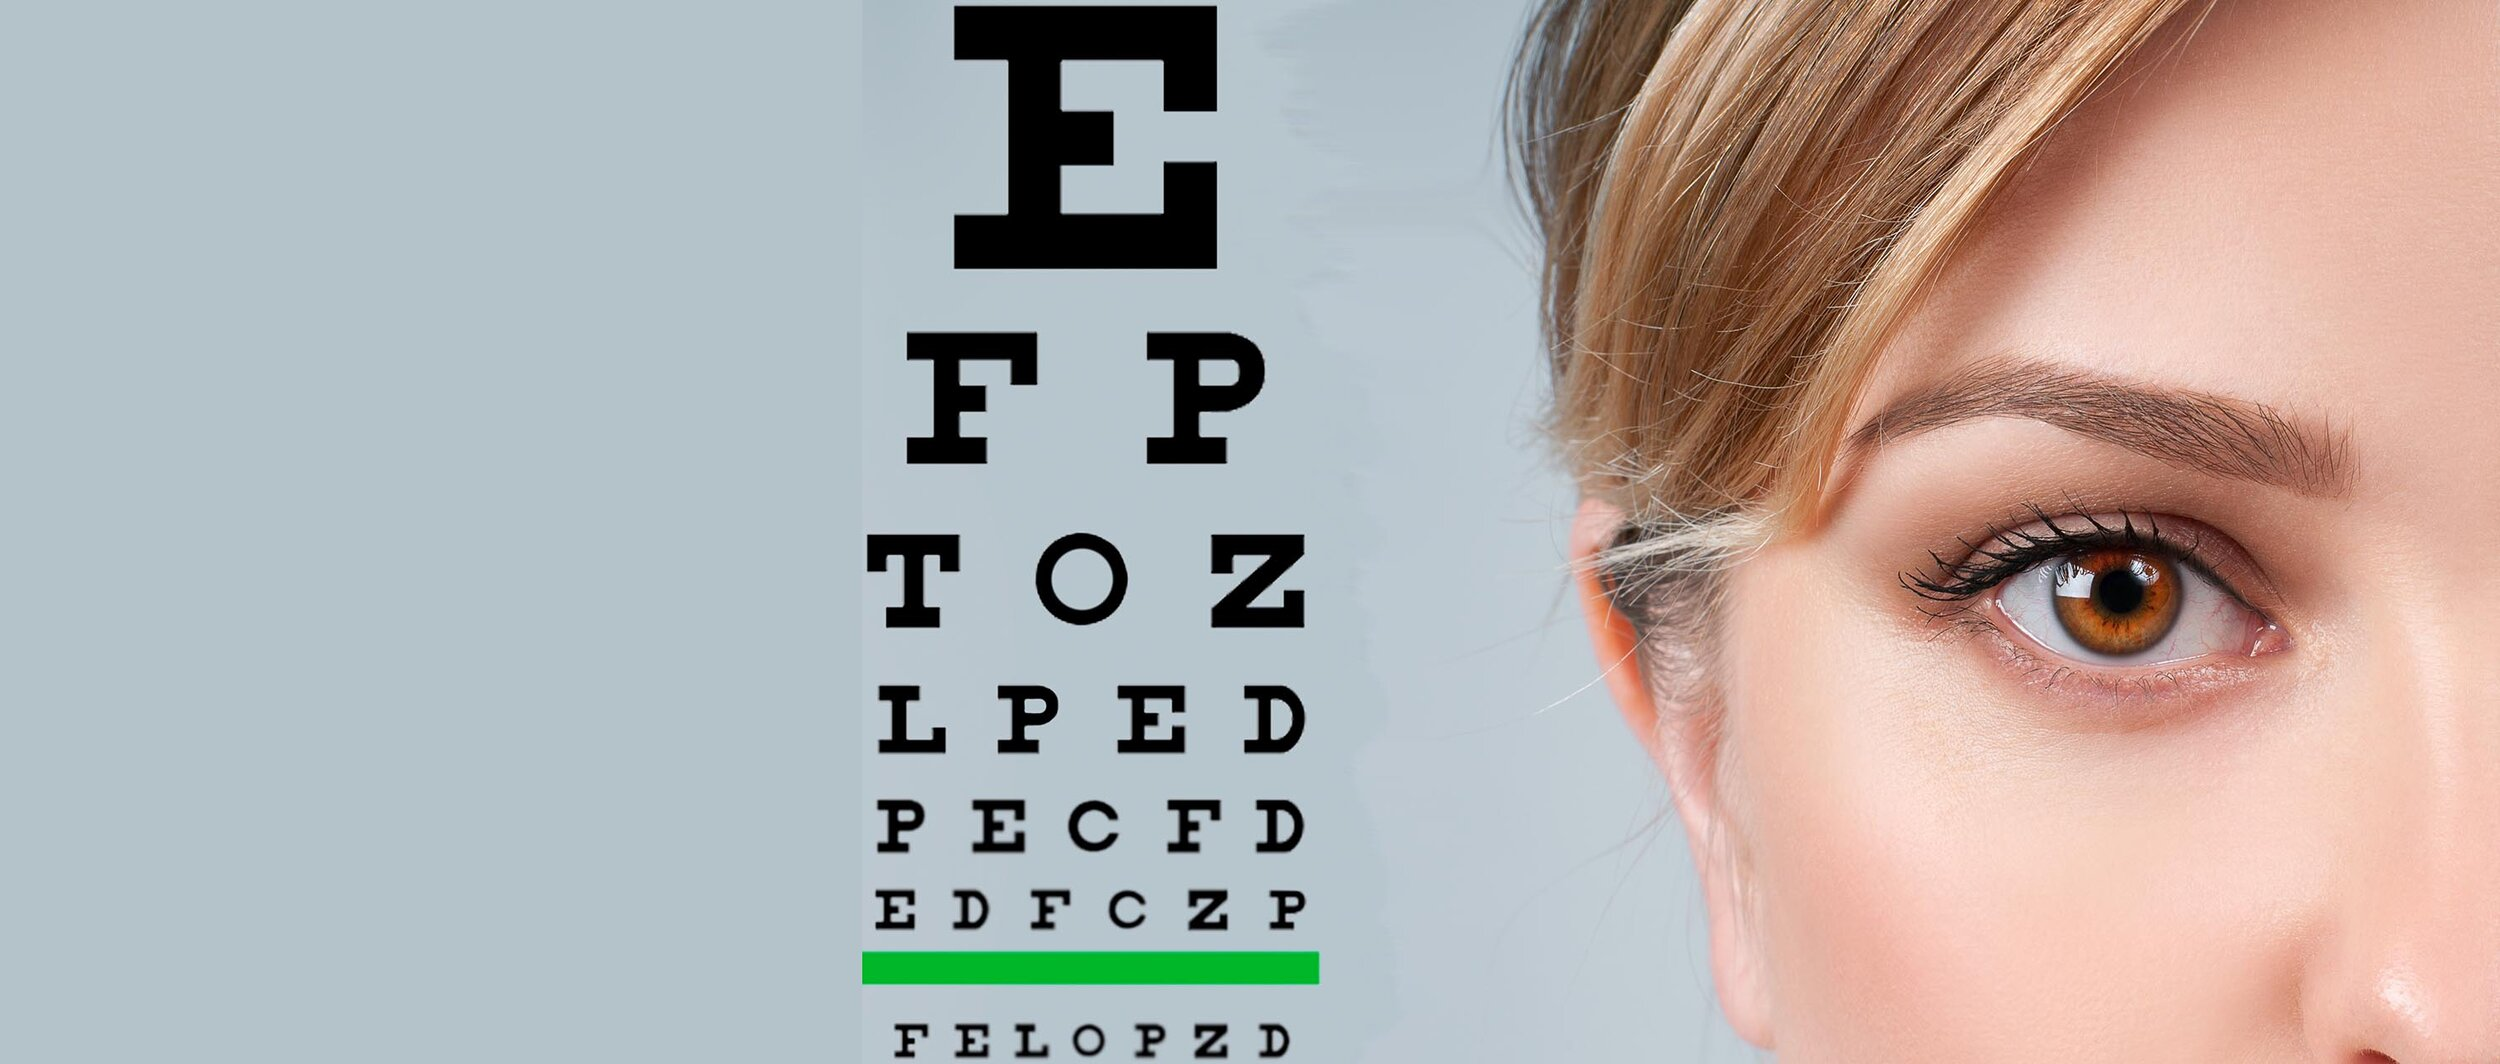 Lasik Cataract And Eye Consultants Of Michigan